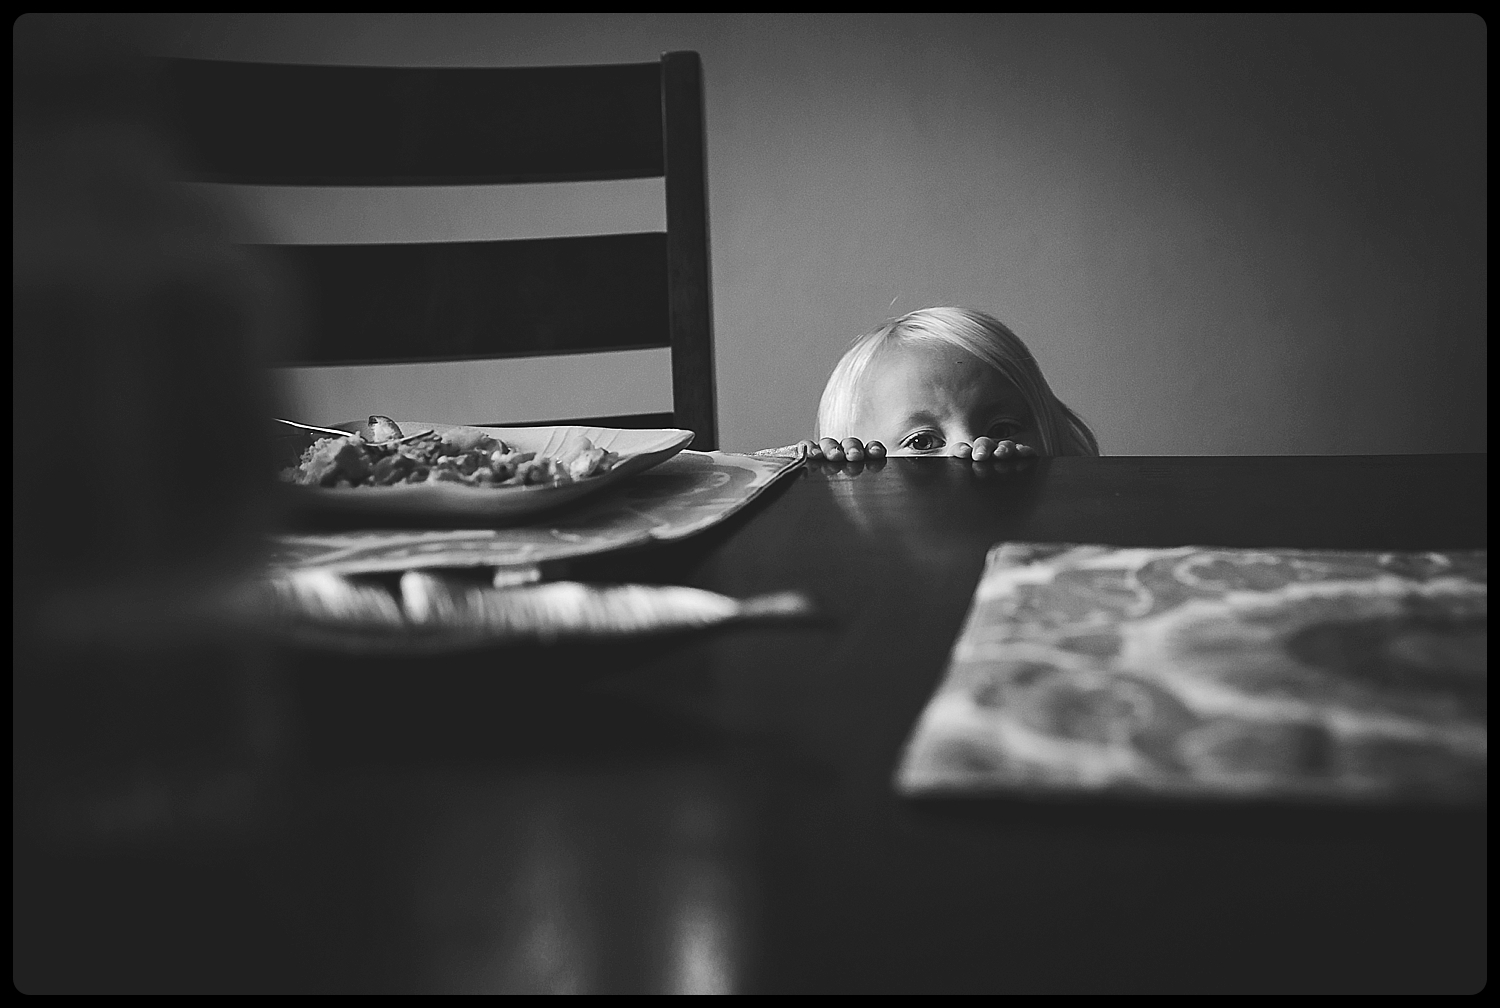 Little girl peeking up over kitchen table.